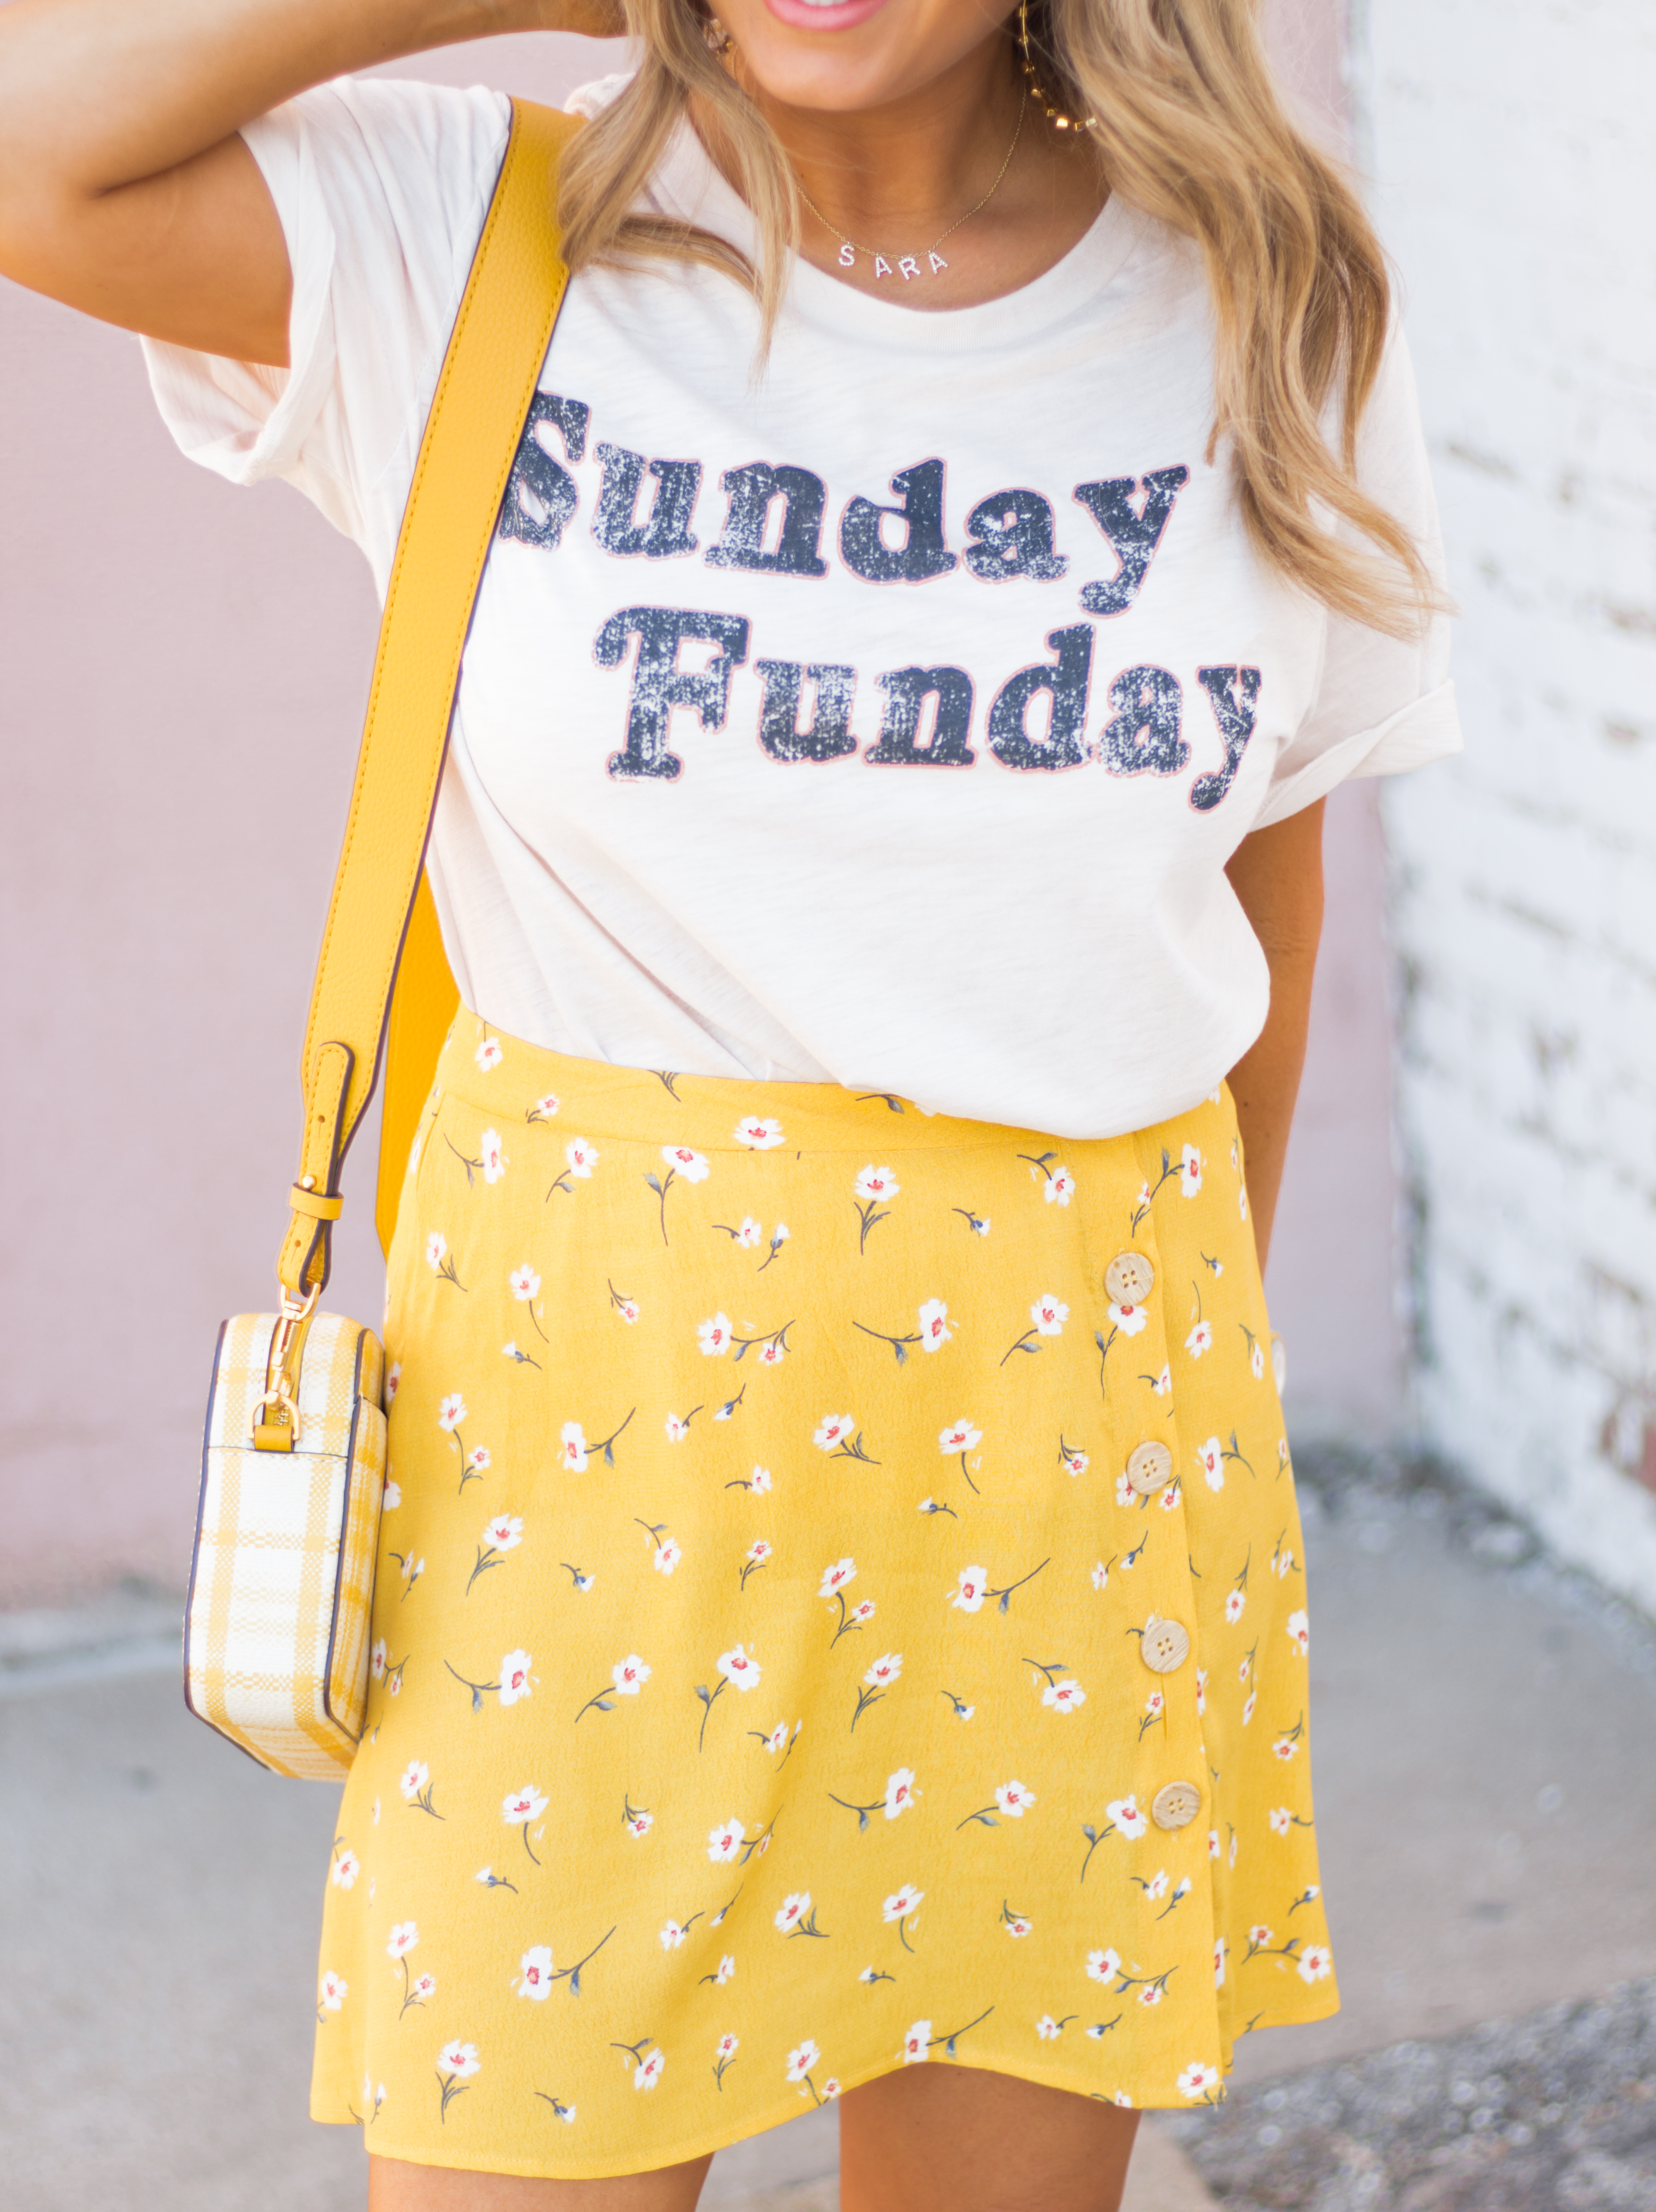 Sunday Funday-Graphic Tee-Floral Skirt-Mini Skirt-Spring Fashion-Spring Style-Tory Burch Purse-Quay Sunglasses-Tan Wedges-Espadrilles-Yellow-Colorful Style-Sabby Style-Women's Fashion-Omaha Blog-Omaha Blogger-1